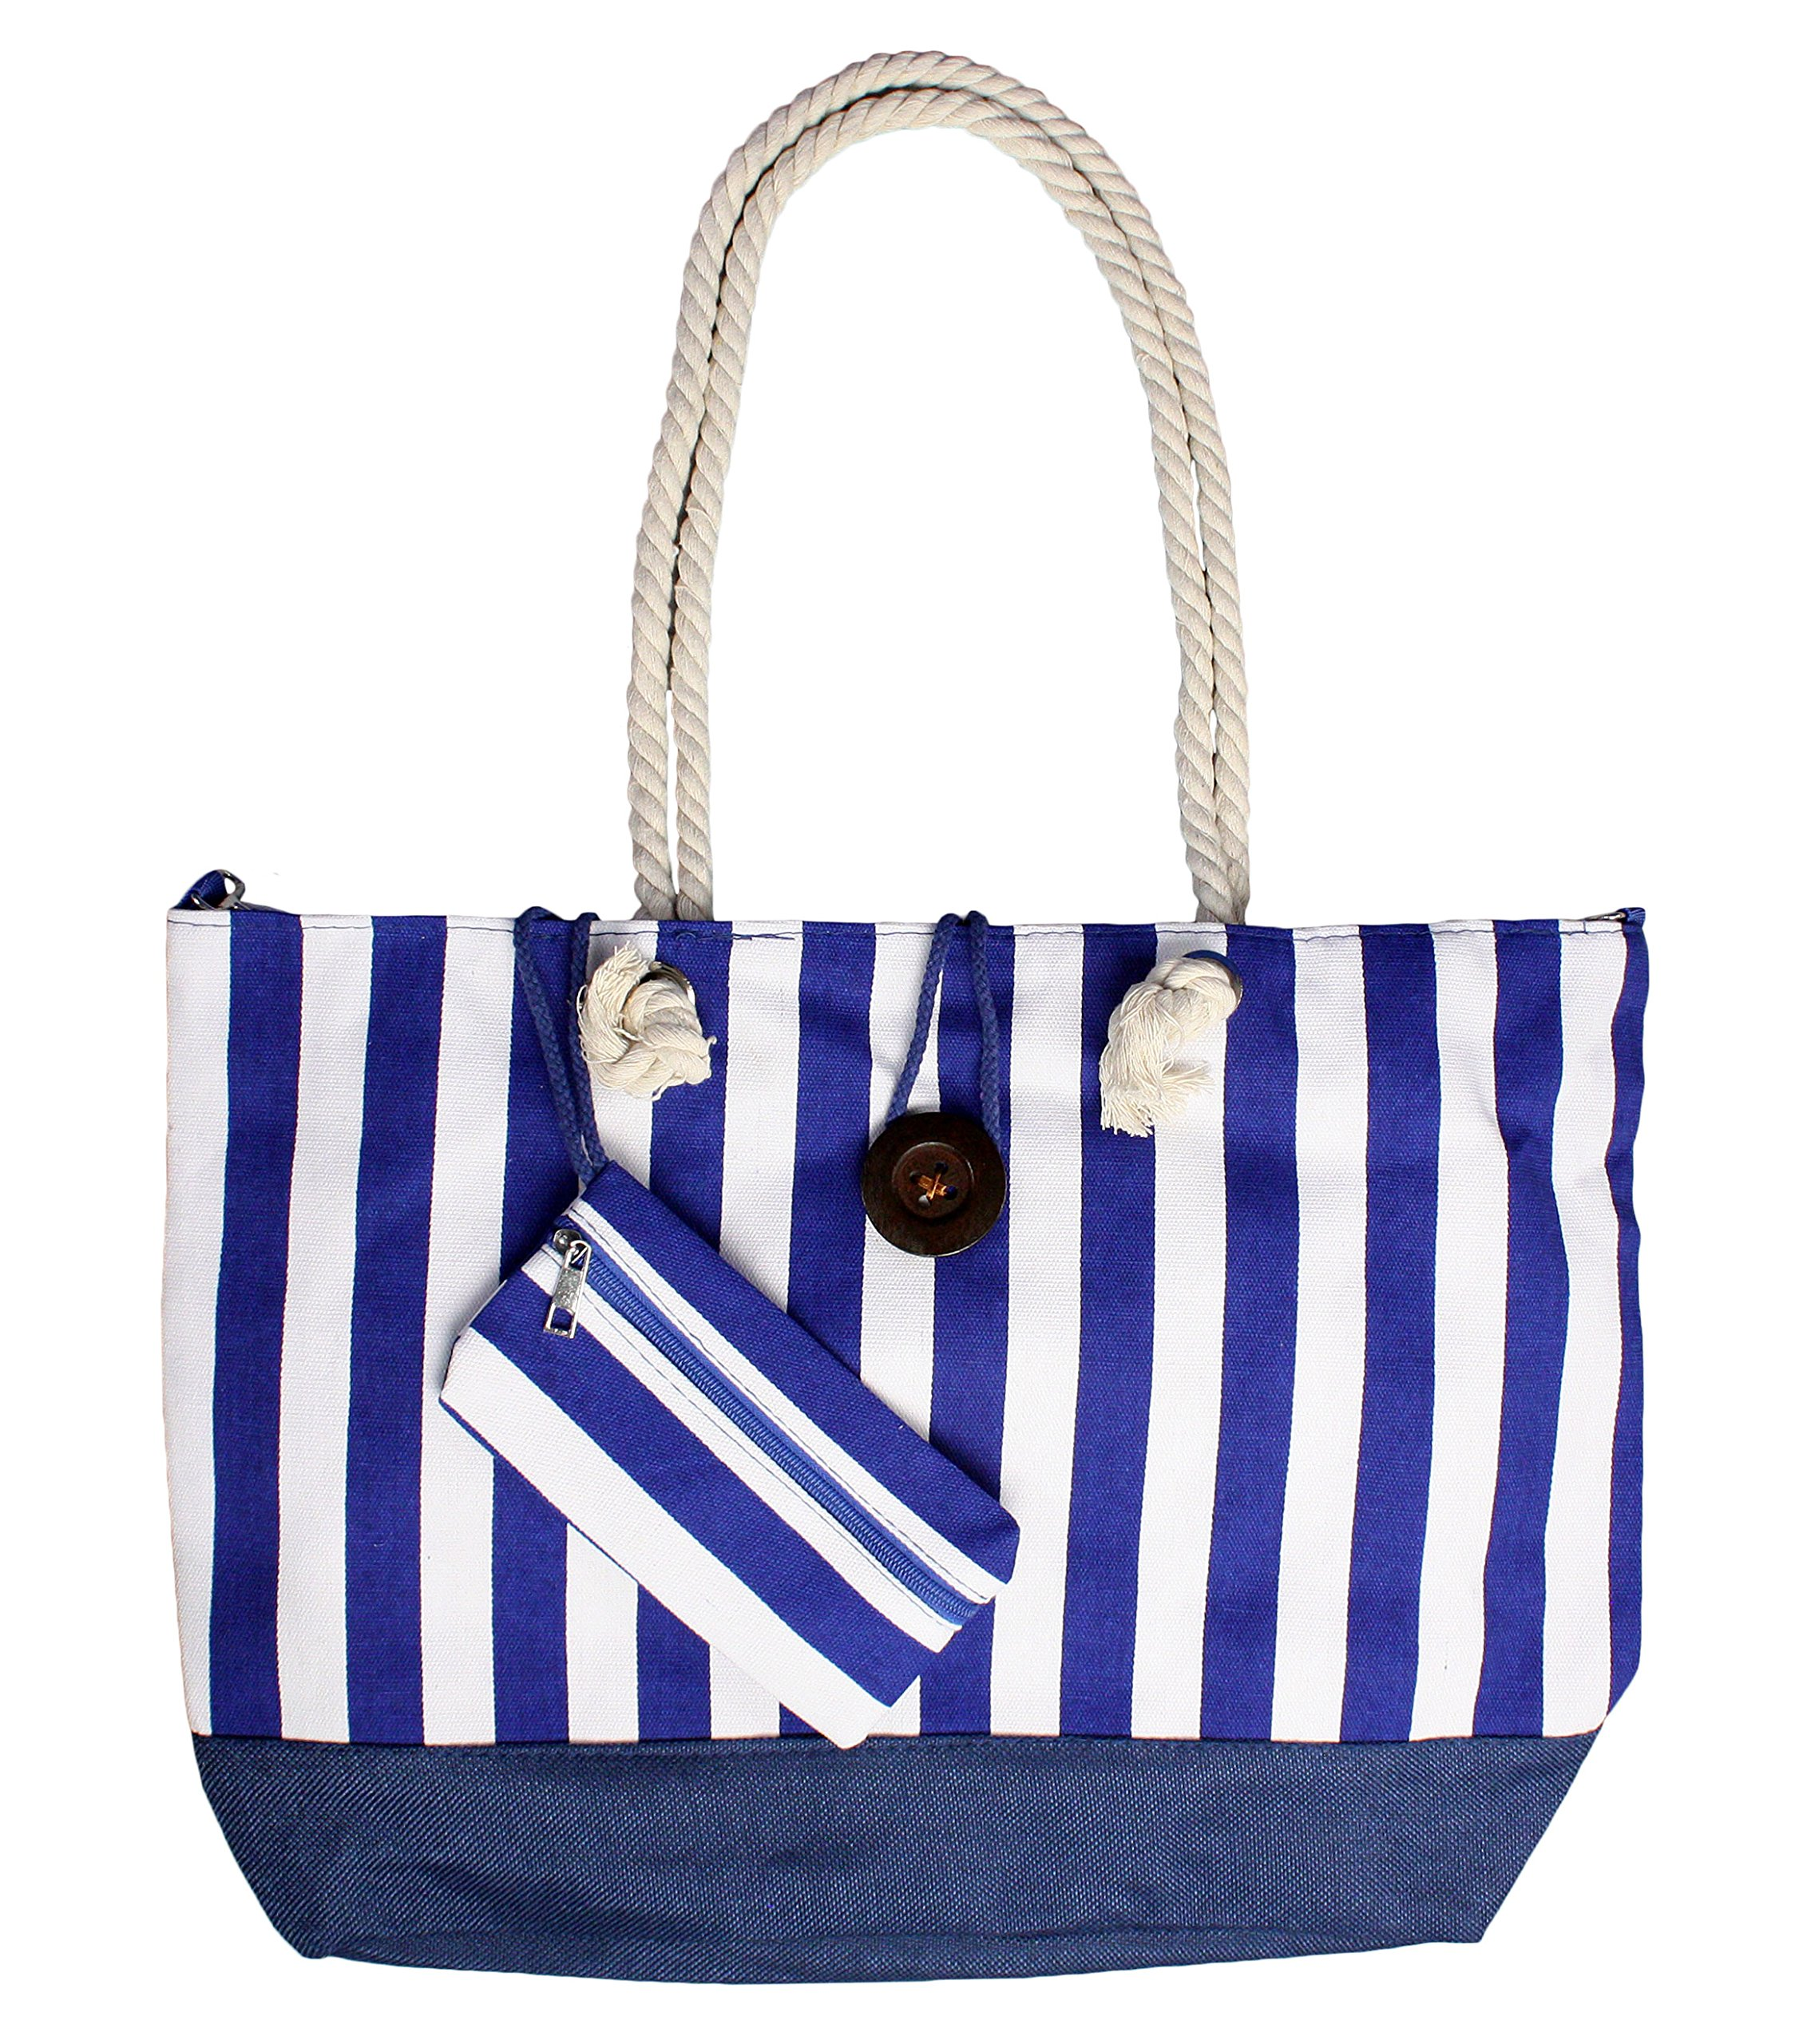 Heavy Duty Canvas Beach Bag Large Tote with Inner Lining - Blue/White